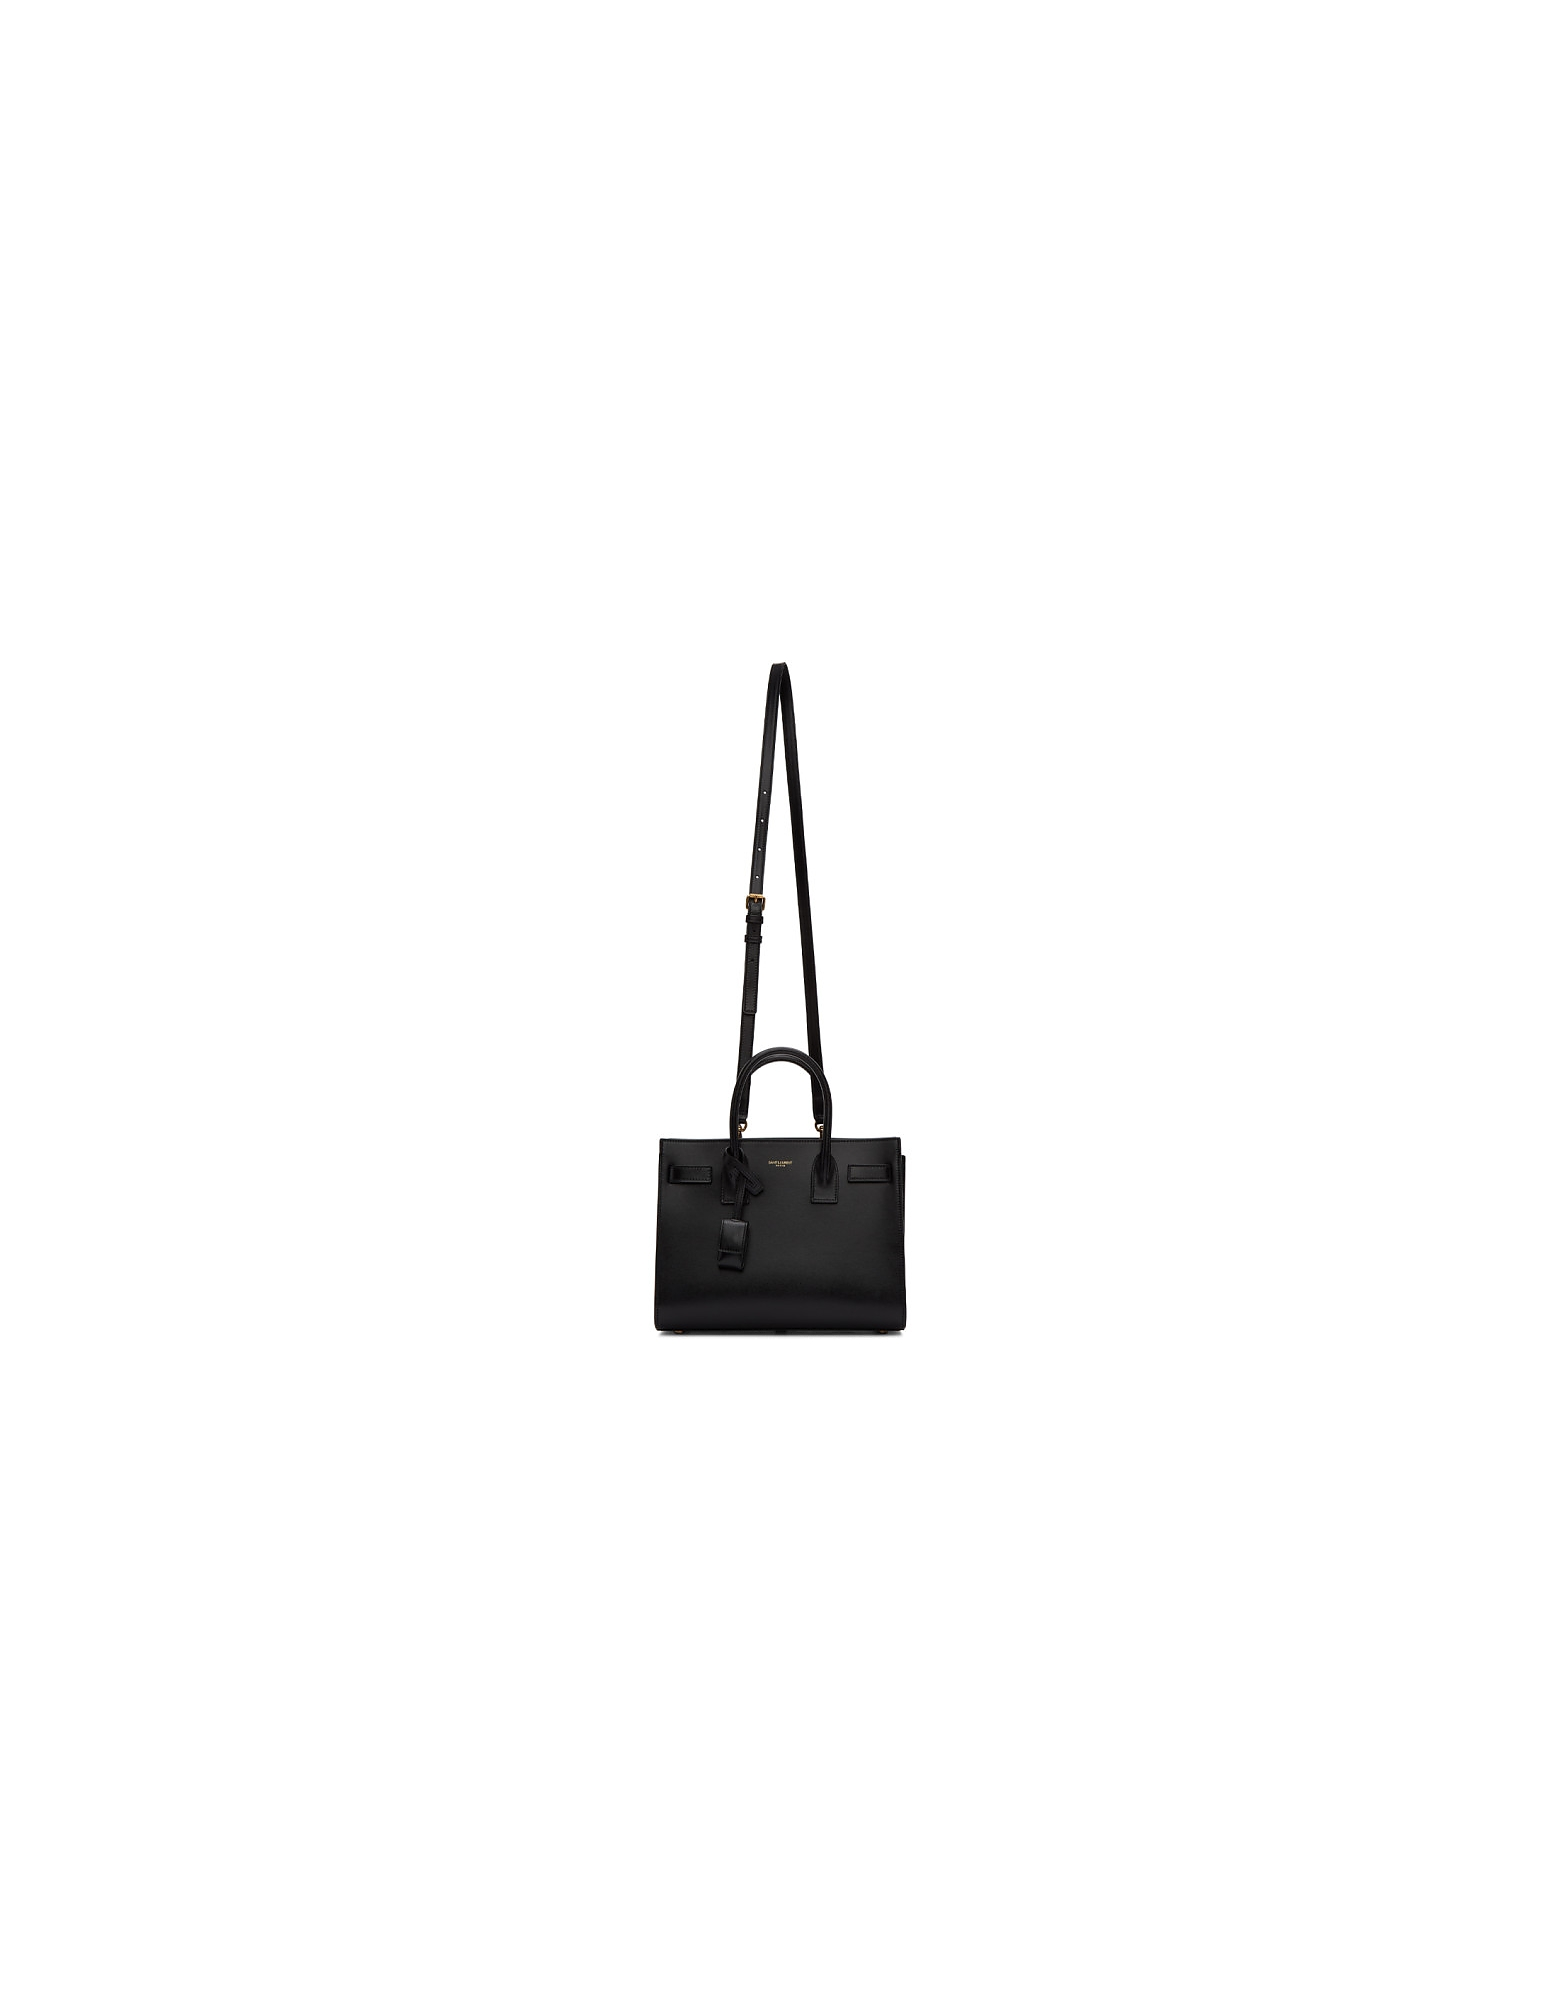 Saint Laurent Designer Handbags, Black Baby Nano Sac De Jour Tote